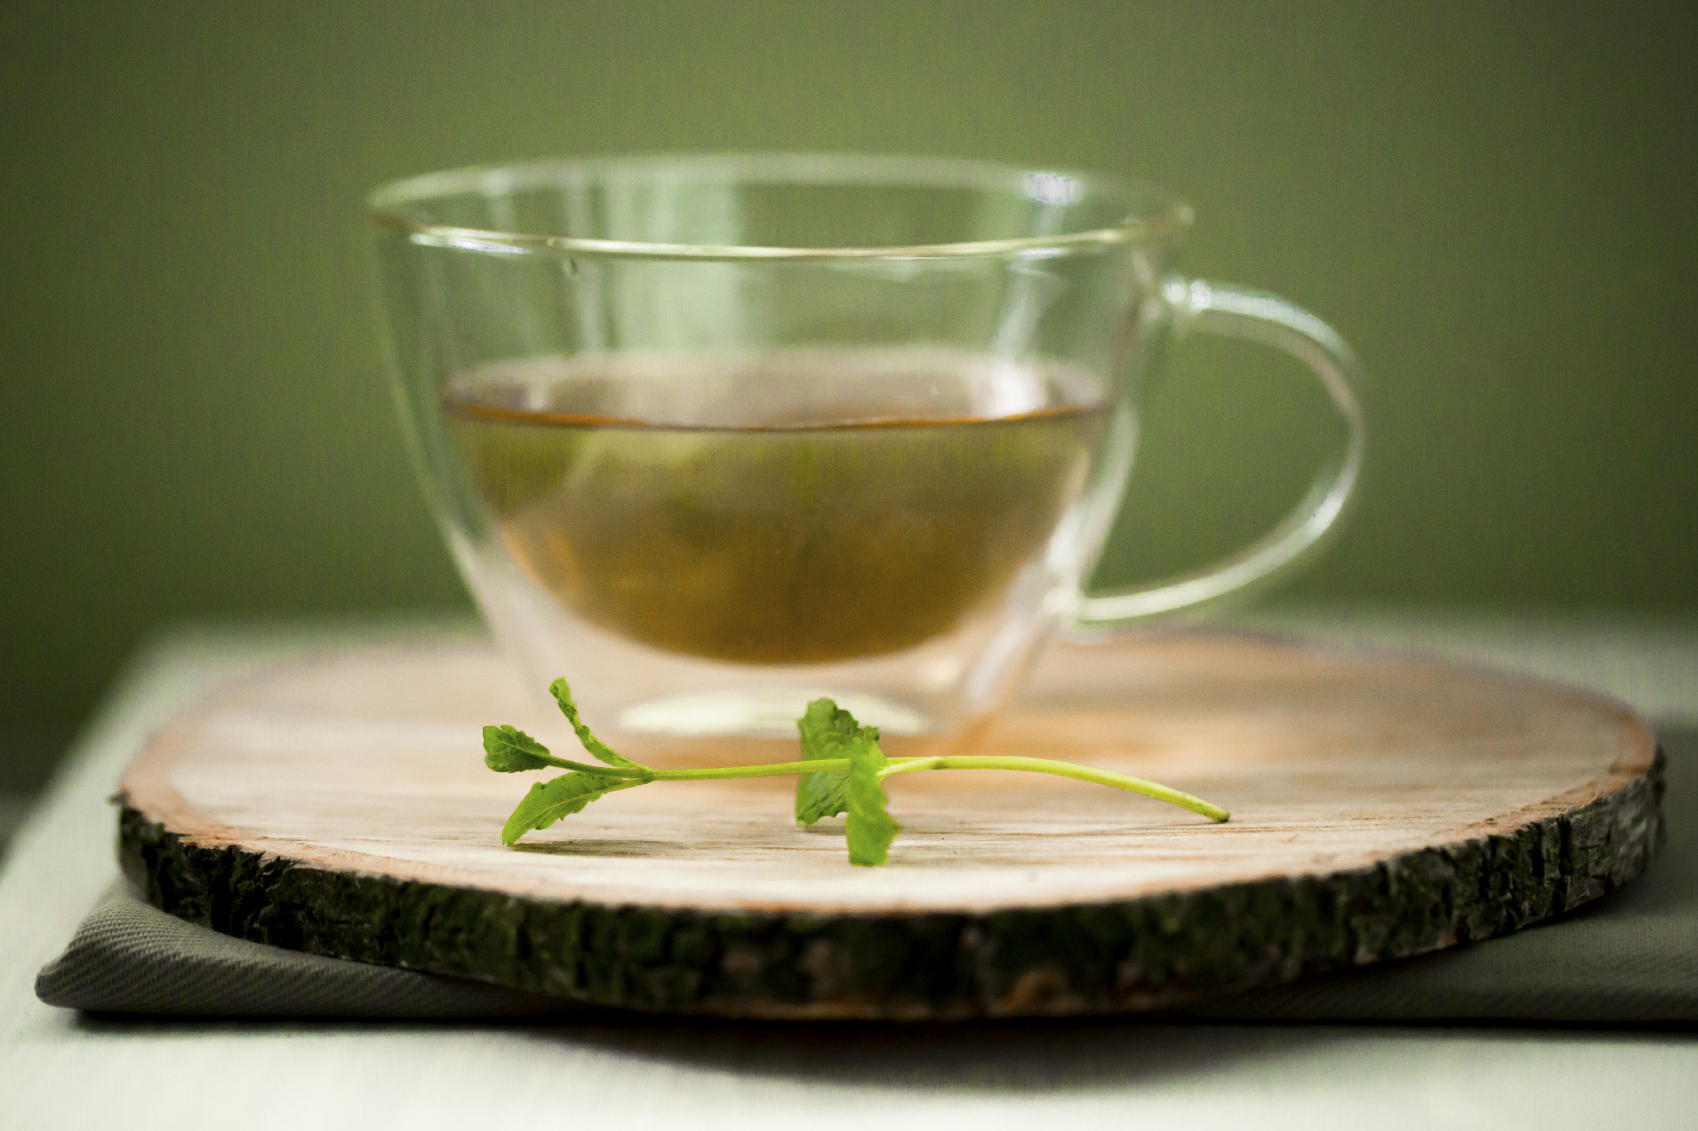 EGCG, a natural substance in green tea, can ease the pain and swelling of rheumatoid arthritis, a University of Washington study finds.